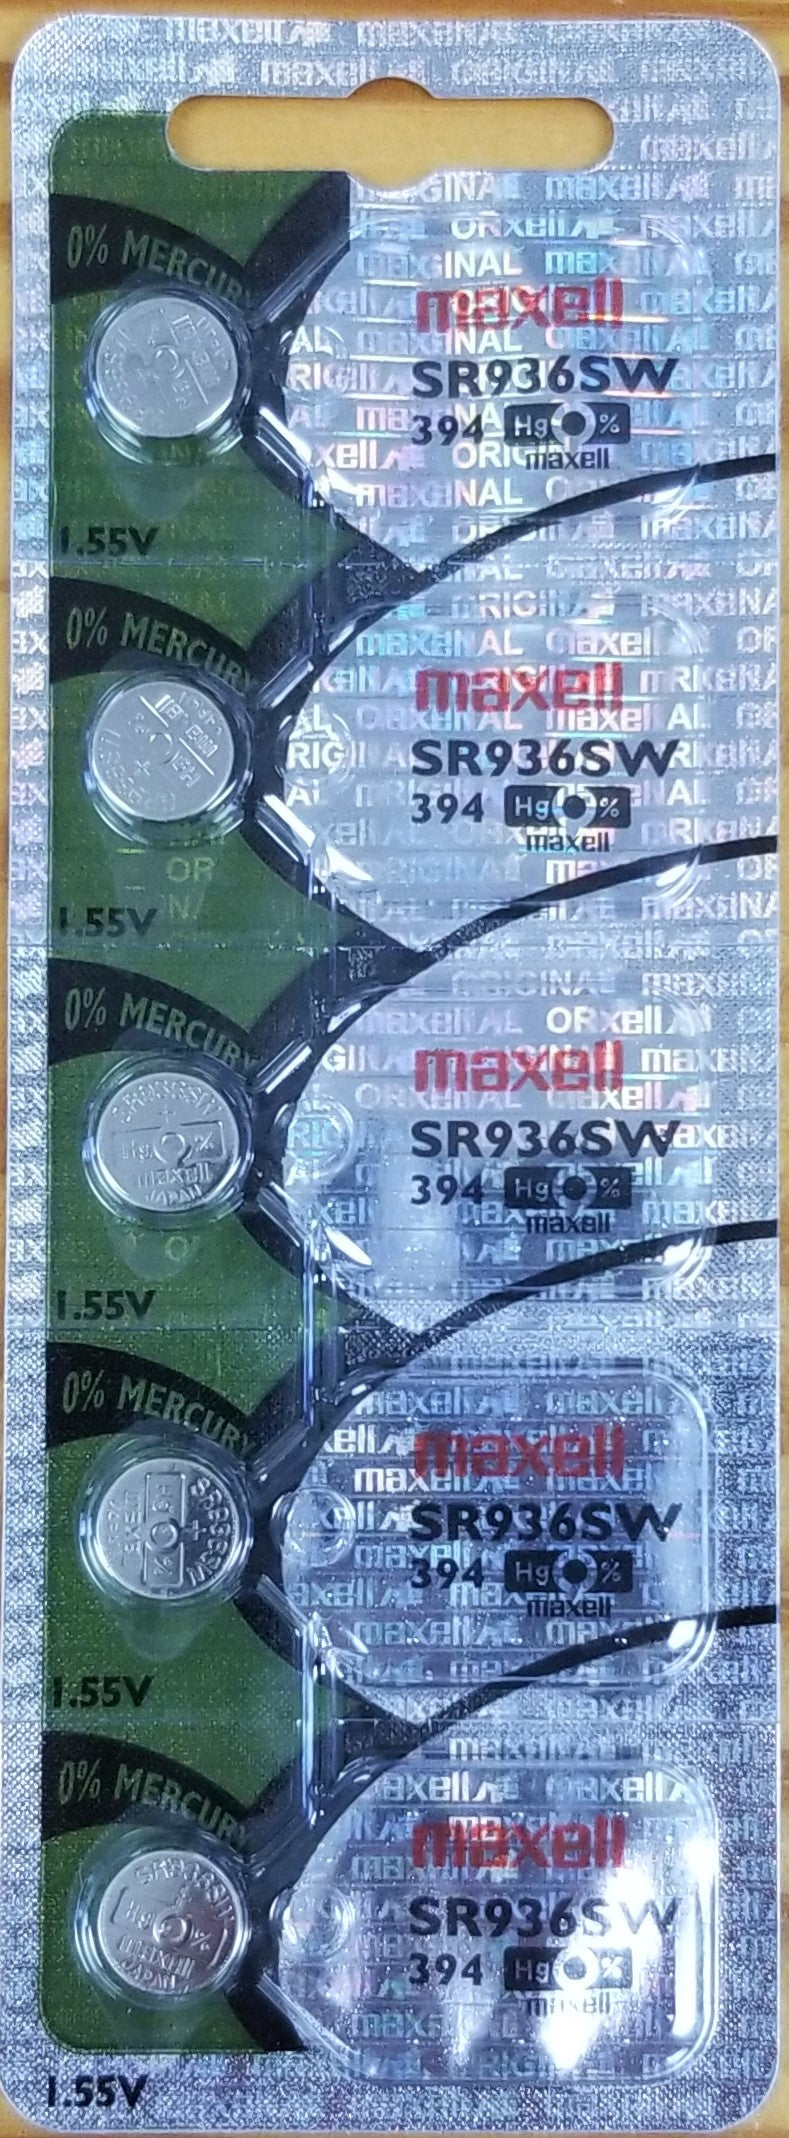 Maxell #394 SR936SW 1.55v Silver Oxide Battery - Tear Strip of 5